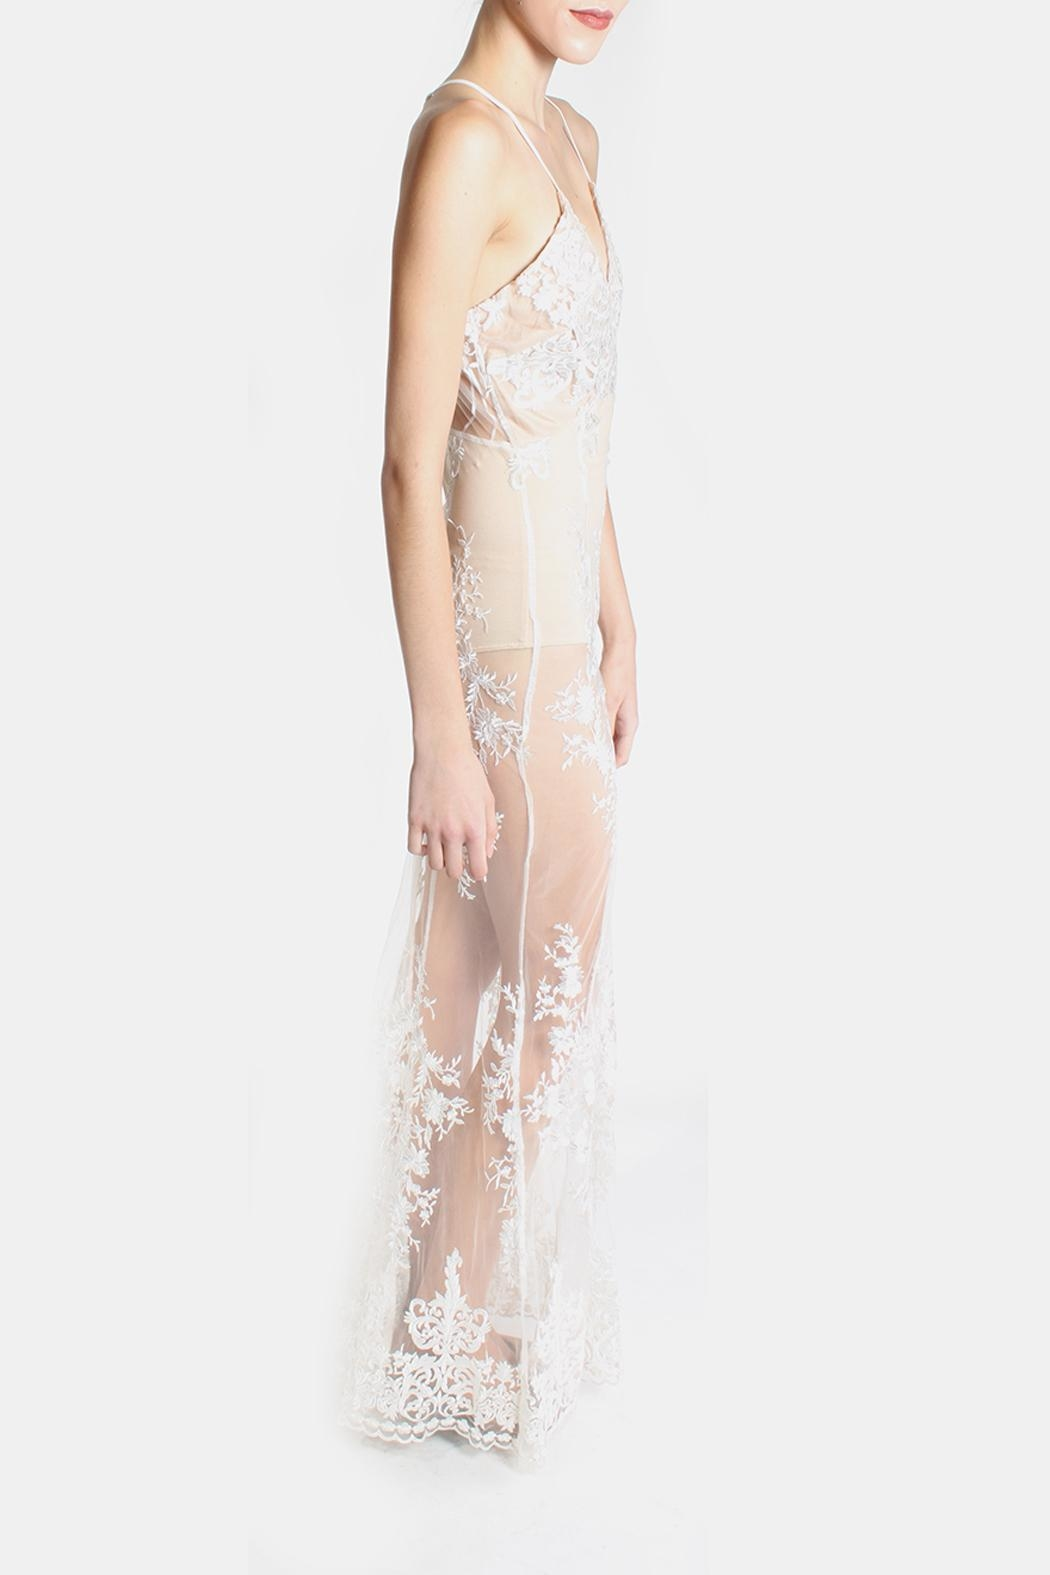 luxxel Glamour Bodysuit Lace Dress - Side Cropped Image